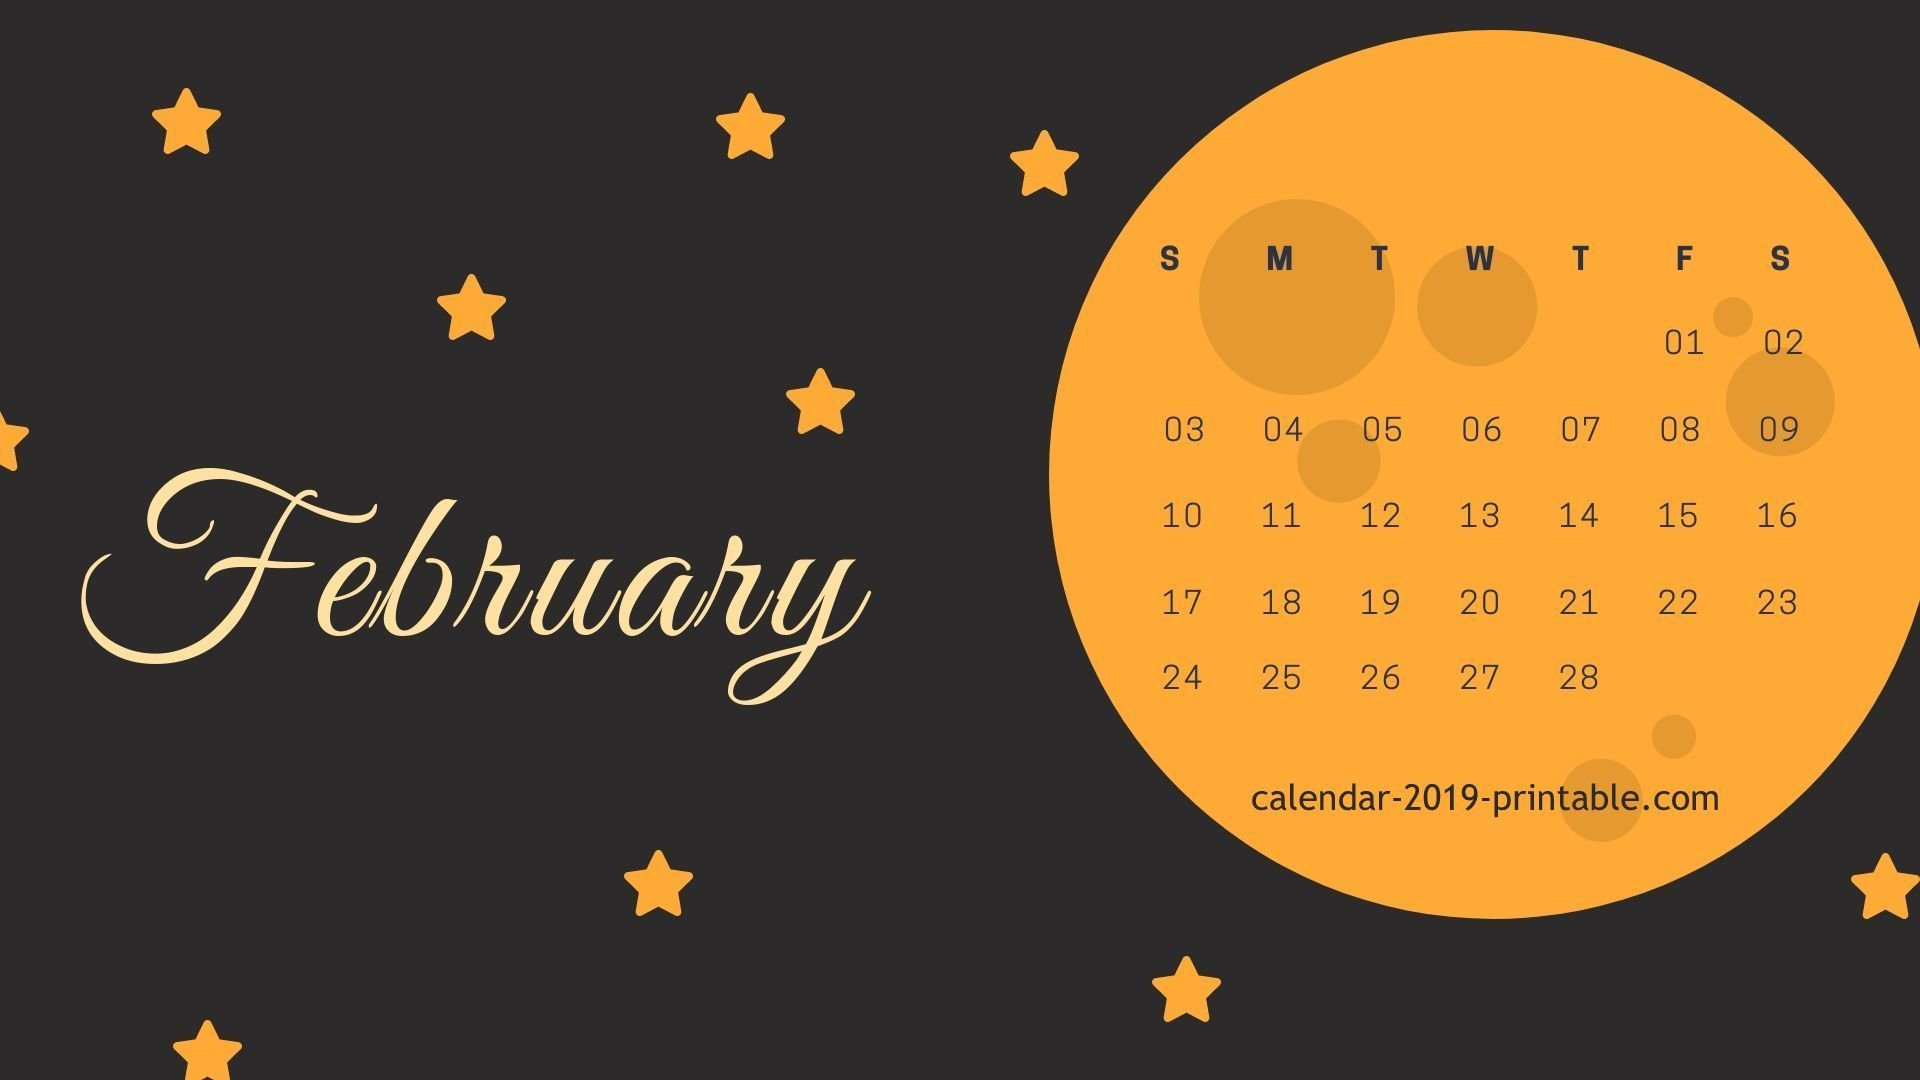 February 2019 Computer Calendar Wallpaper | 2019 Calendars In 2019 Calendar 2019 On Computer